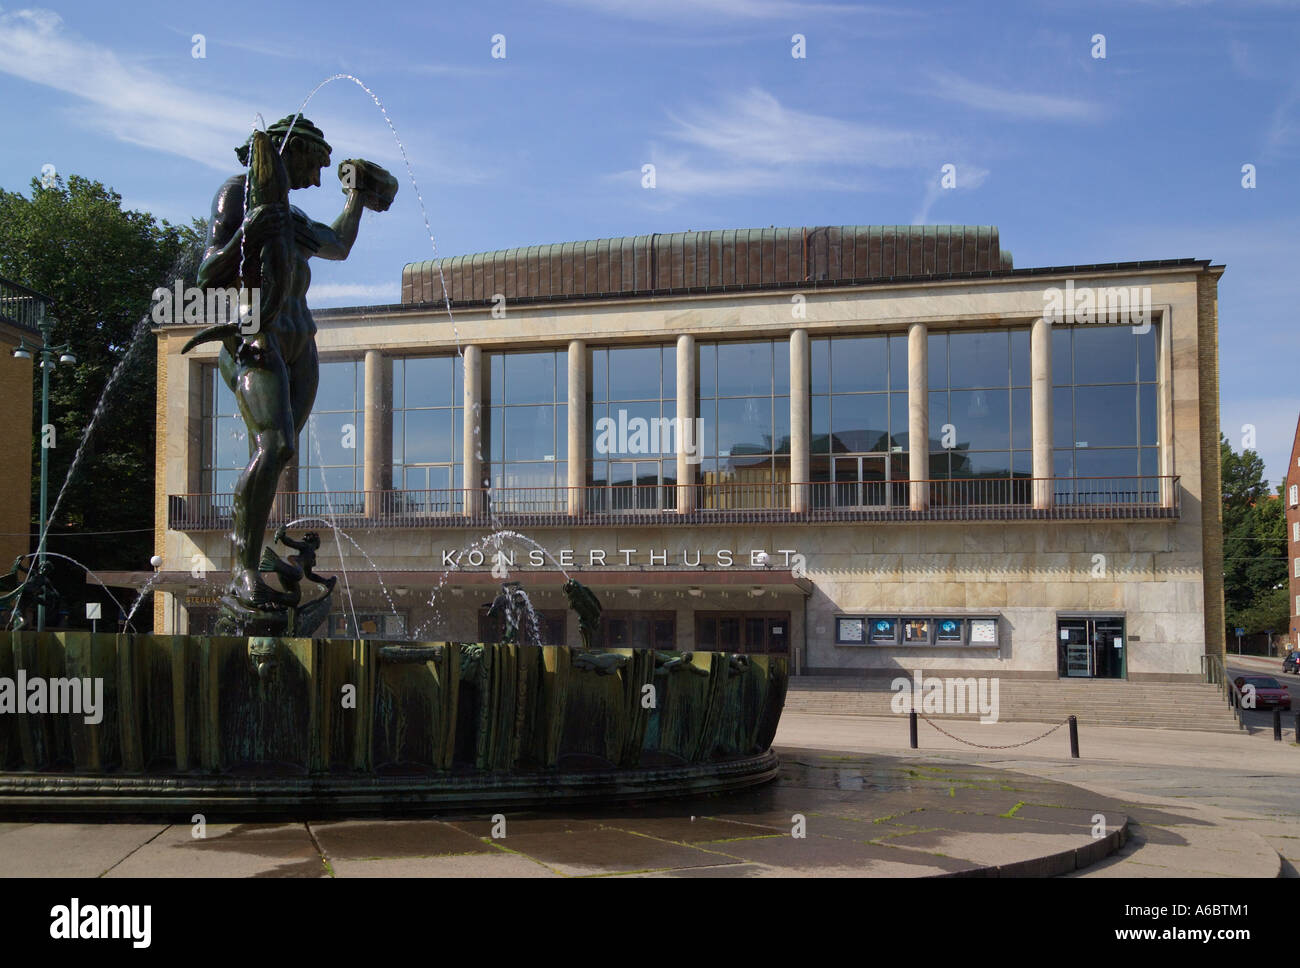 Concert Hall and statue of Poseidon Gothenburg Sweden - Stock Image